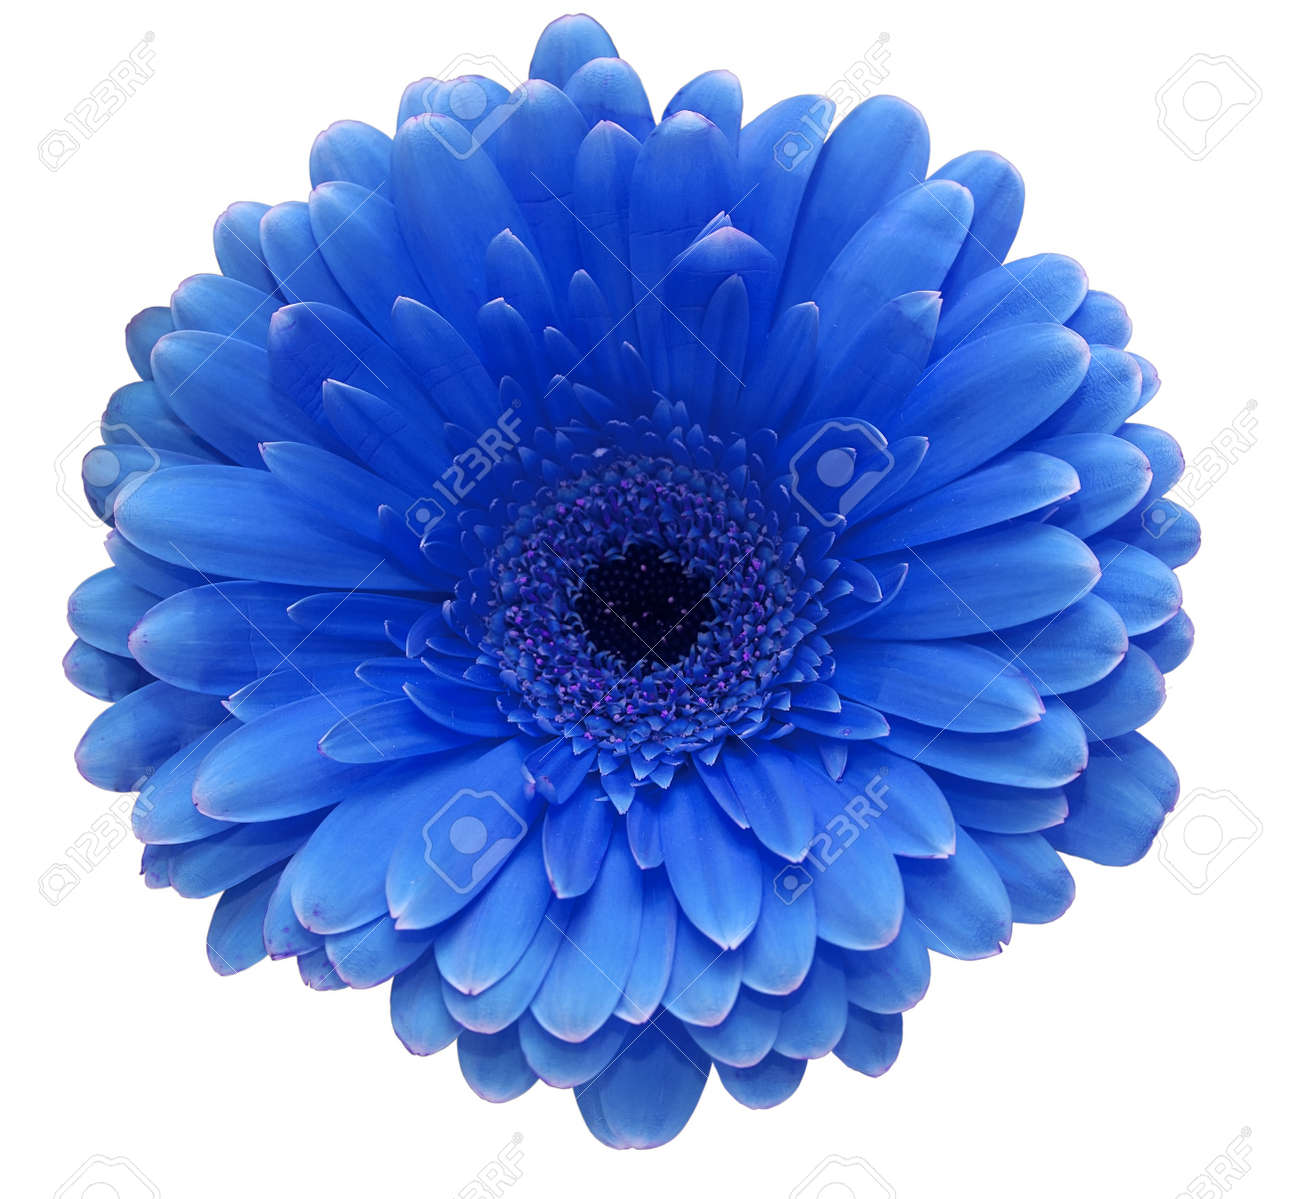 blue flower stock photos  pictures. royalty free blue flower, Beautiful flower